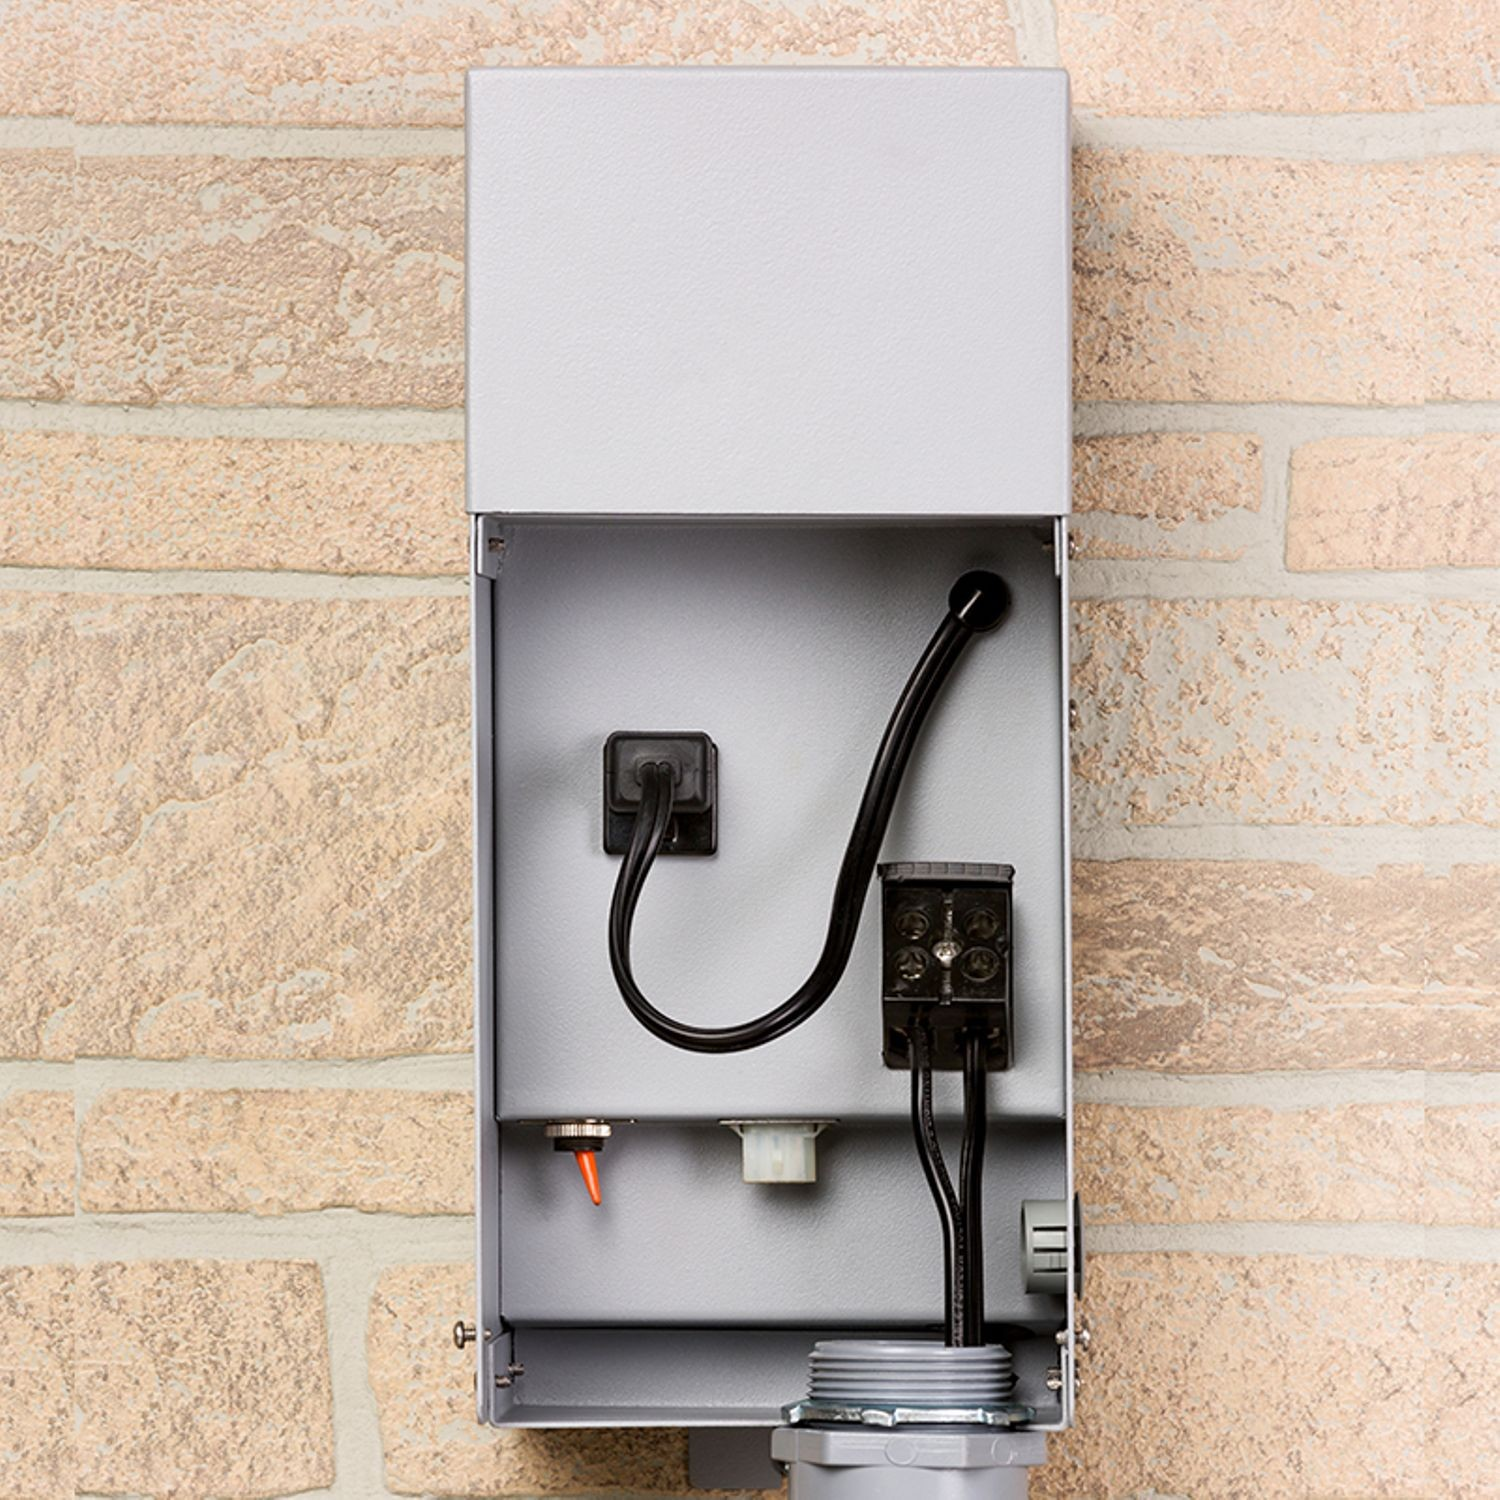 Fx 150w Ex Compact Transformer Reinders Wiring Transformers For Downlights